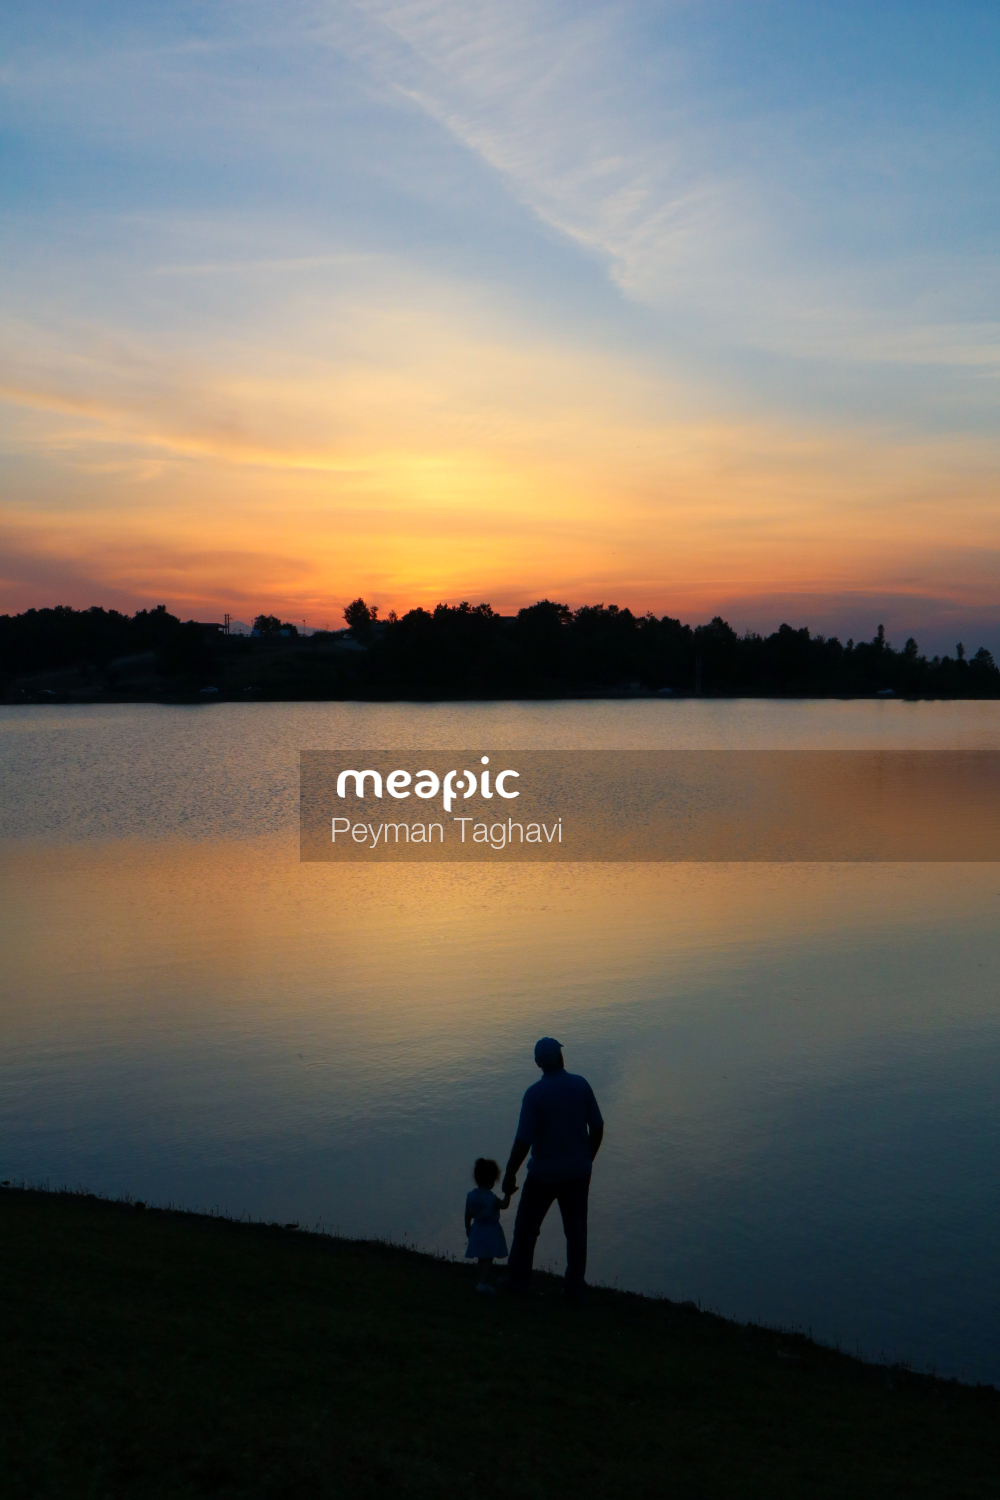 Sunset Over A Body Of Water Stock Photo · Meapic